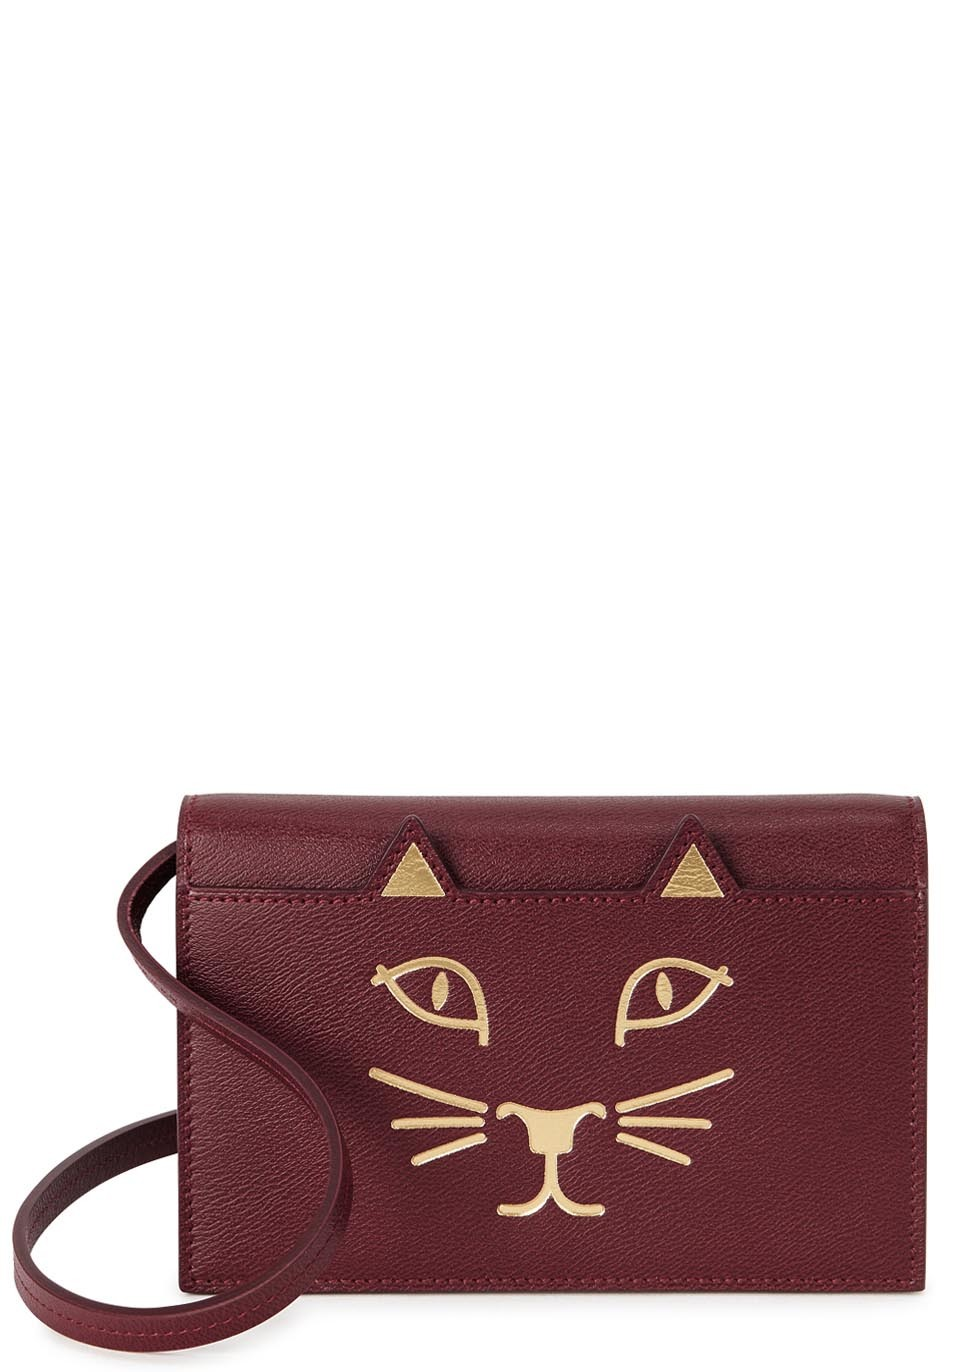 Feline Burgundy Leather Cross Body Bag - predominant colour: burgundy; secondary colour: gold; occasions: casual; type of pattern: standard; style: messenger; length: across body/long; size: small; material: leather; finish: metallic; pattern: patterned/print; season: s/s 2016; wardrobe: highlight